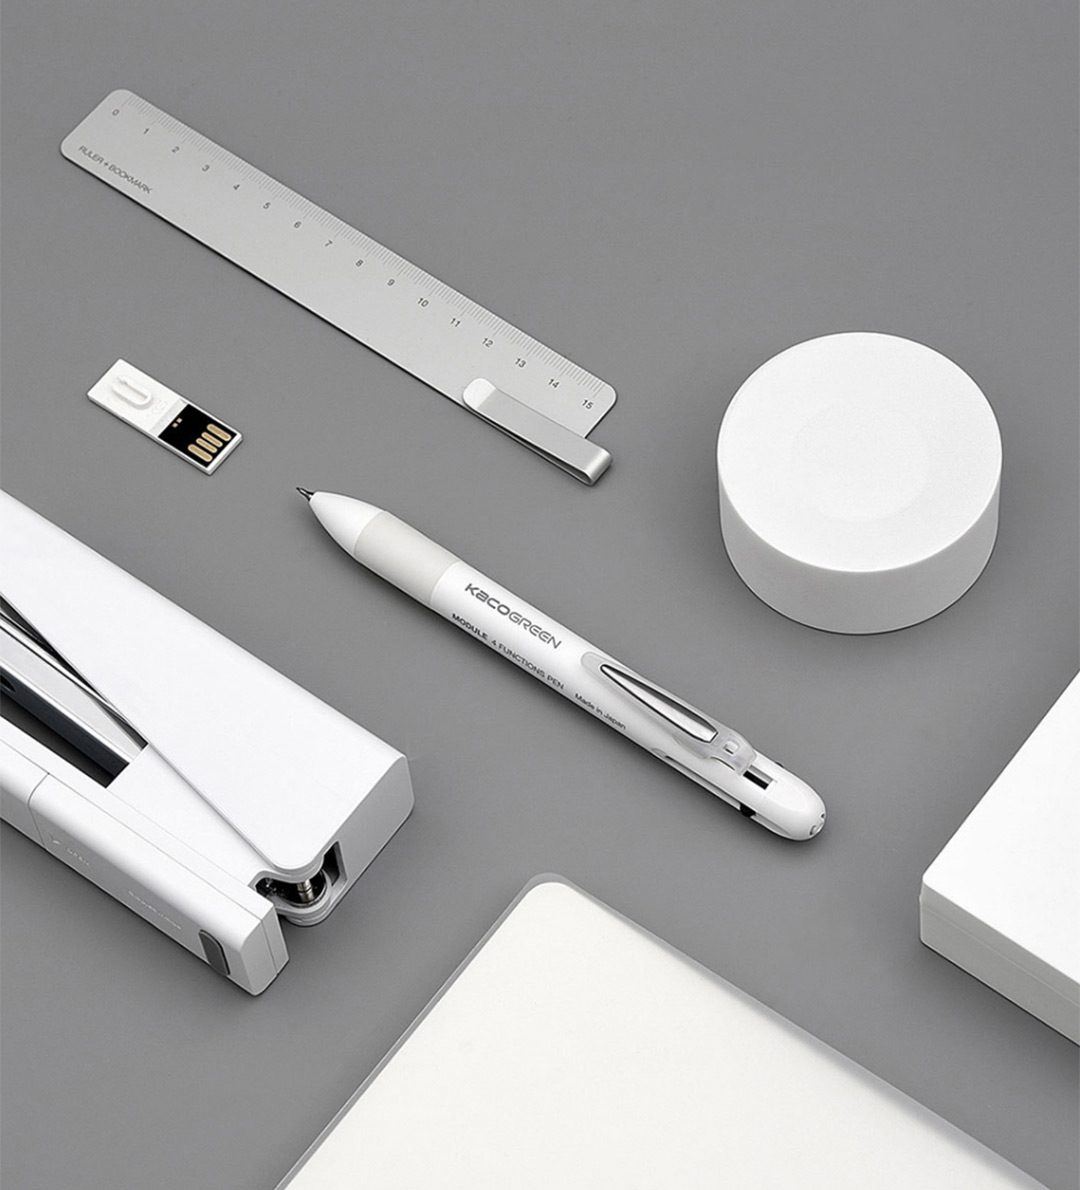 Xiaomi Kaco Green Module 4 in 1 Multifunction Pen